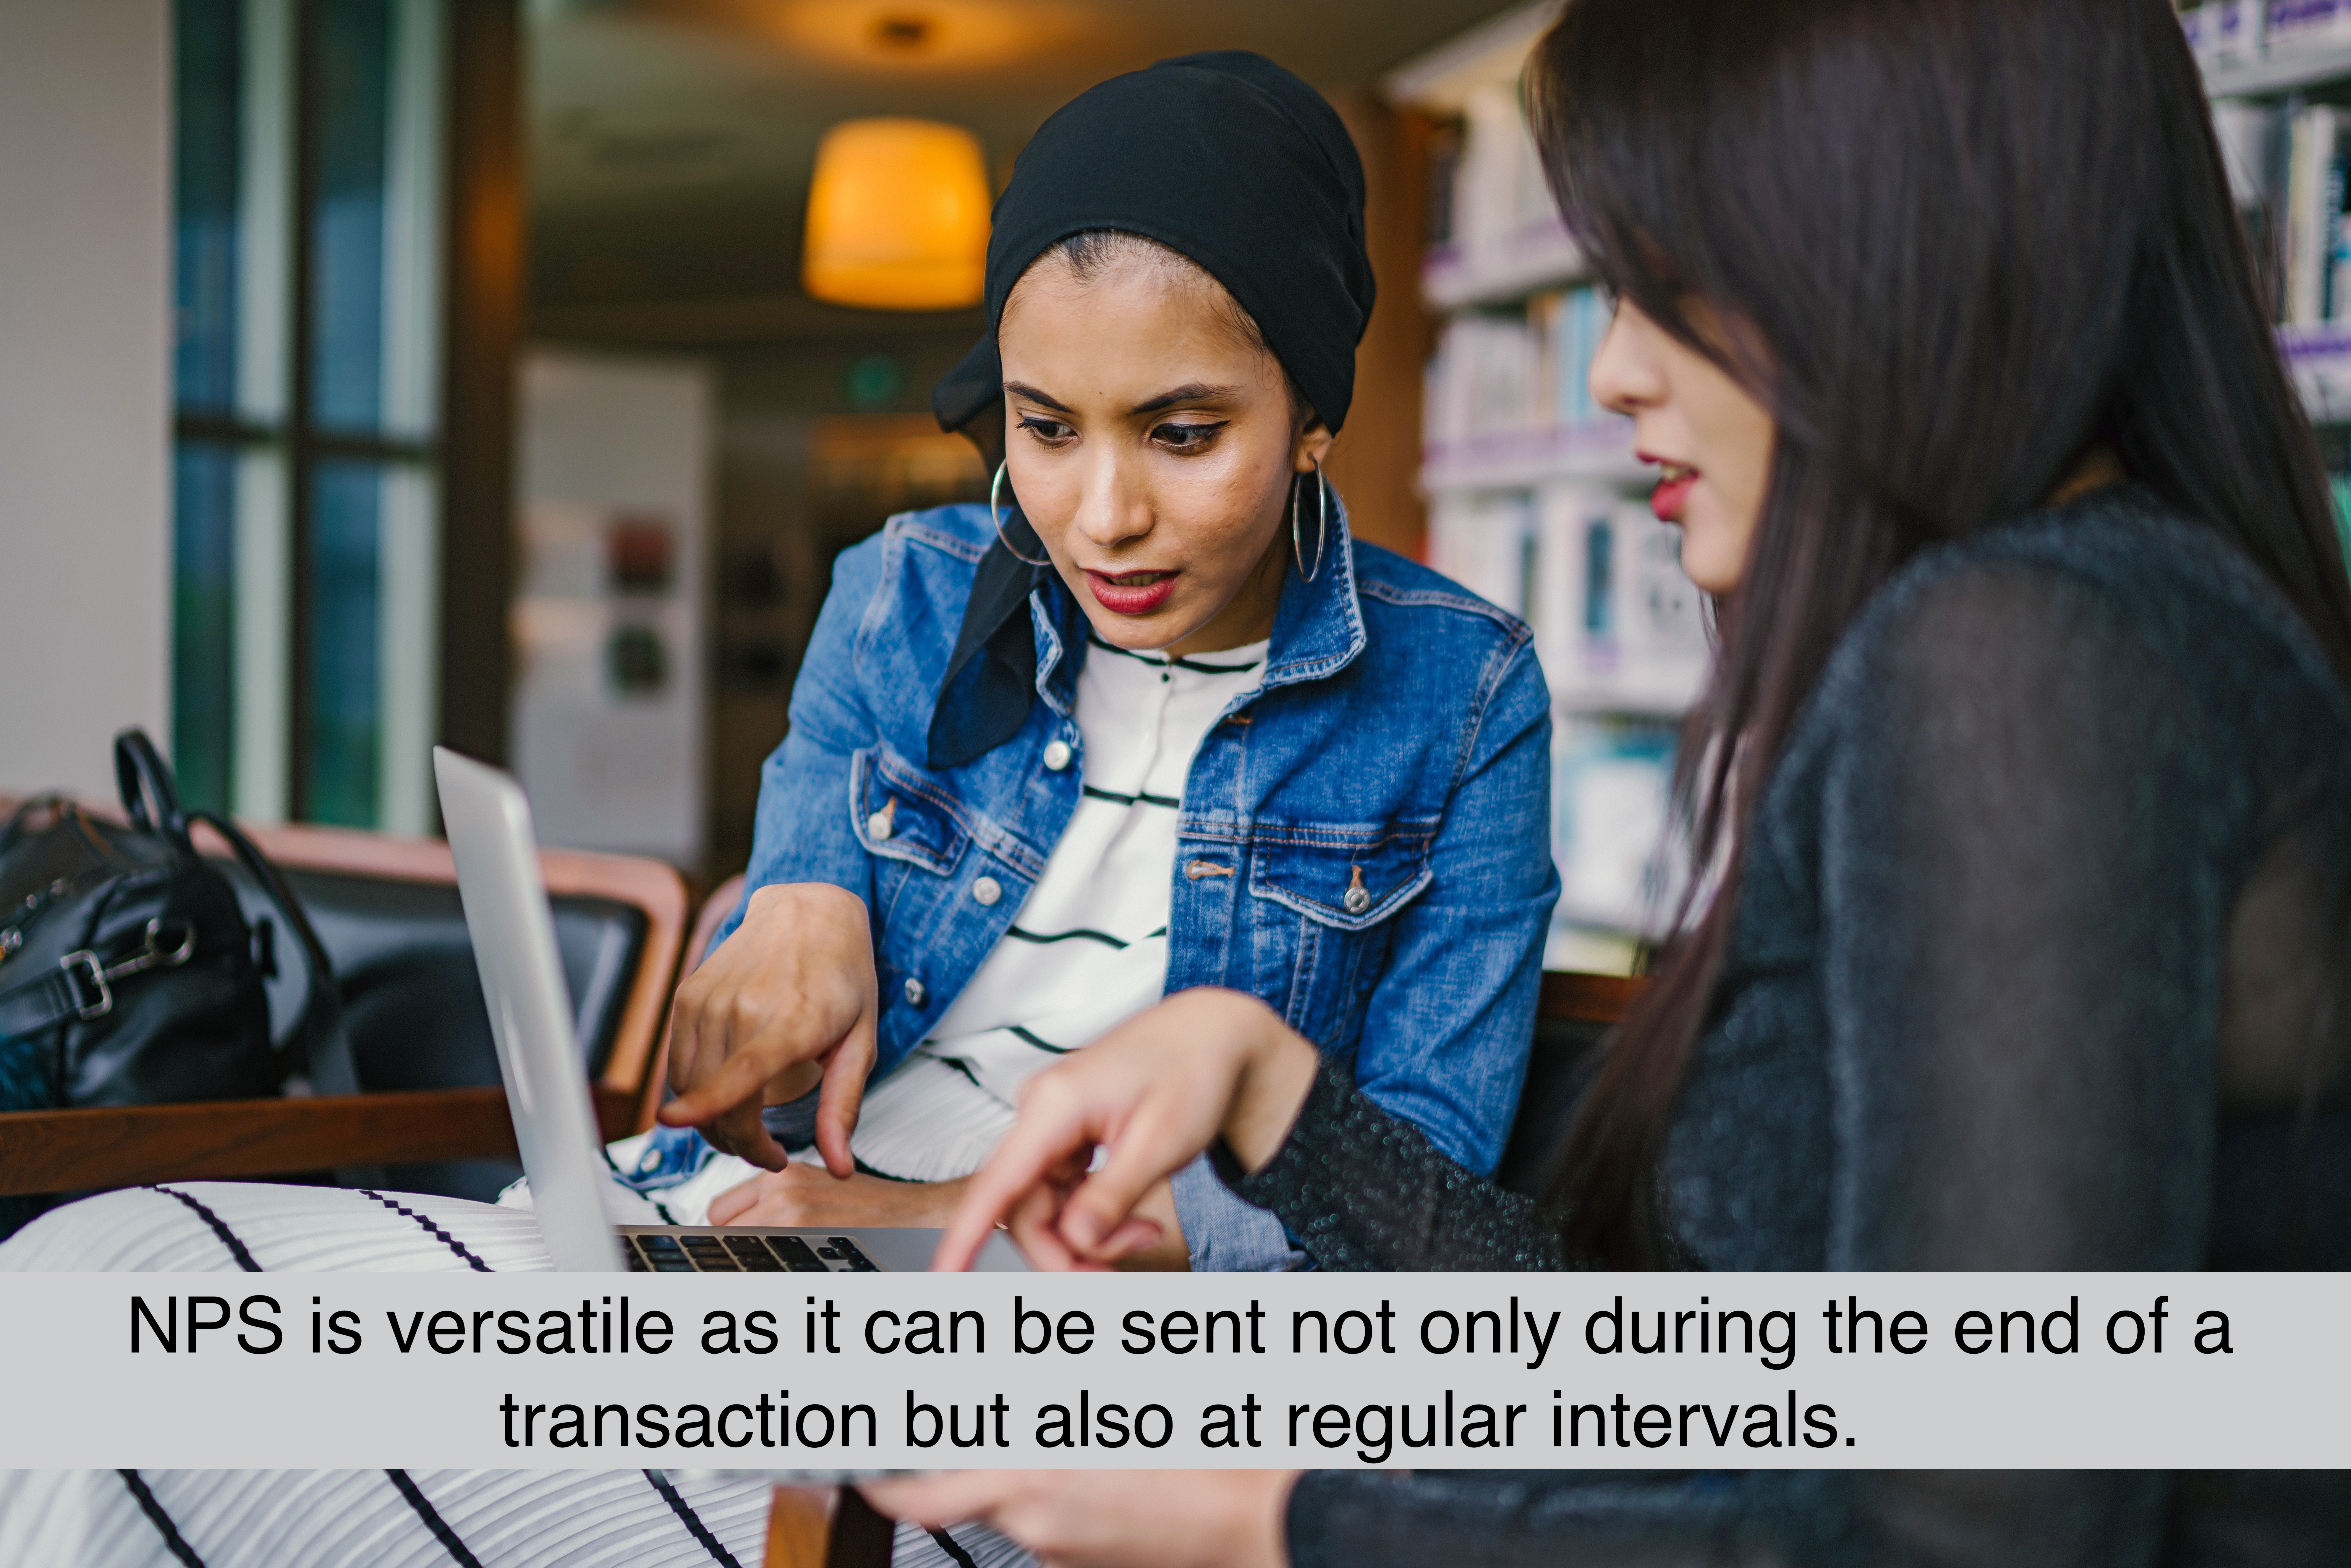 NPS is versatile as it can be sent not only during the end of a transaction but also at regular intervals.